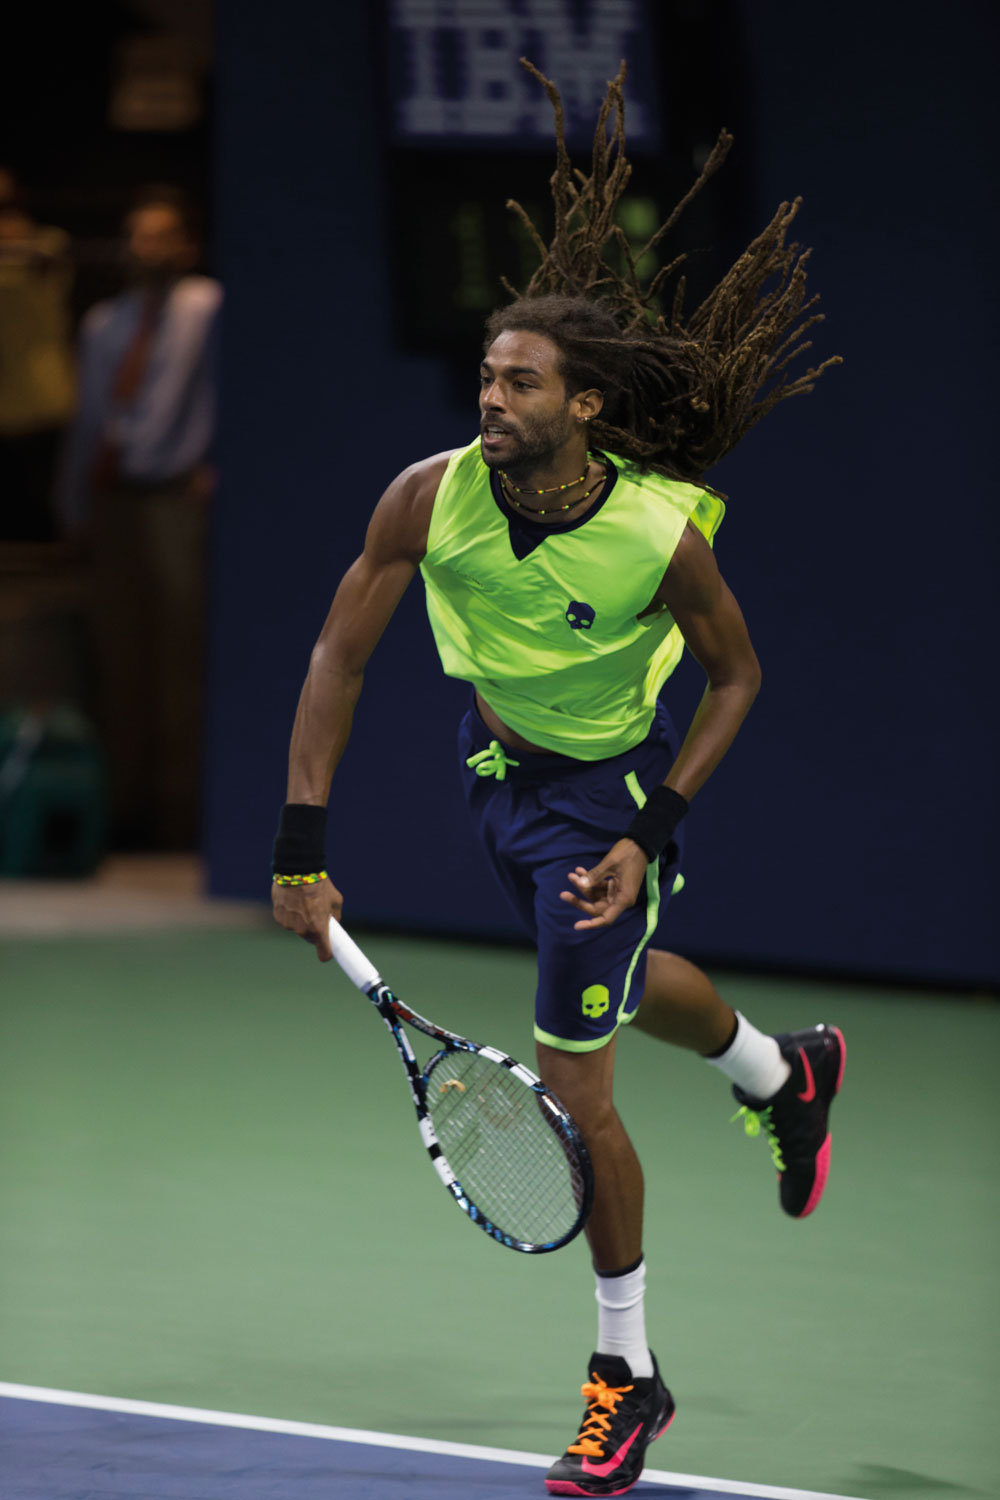 Dustin Brown. Photography by lev radin / Shutterstock.com